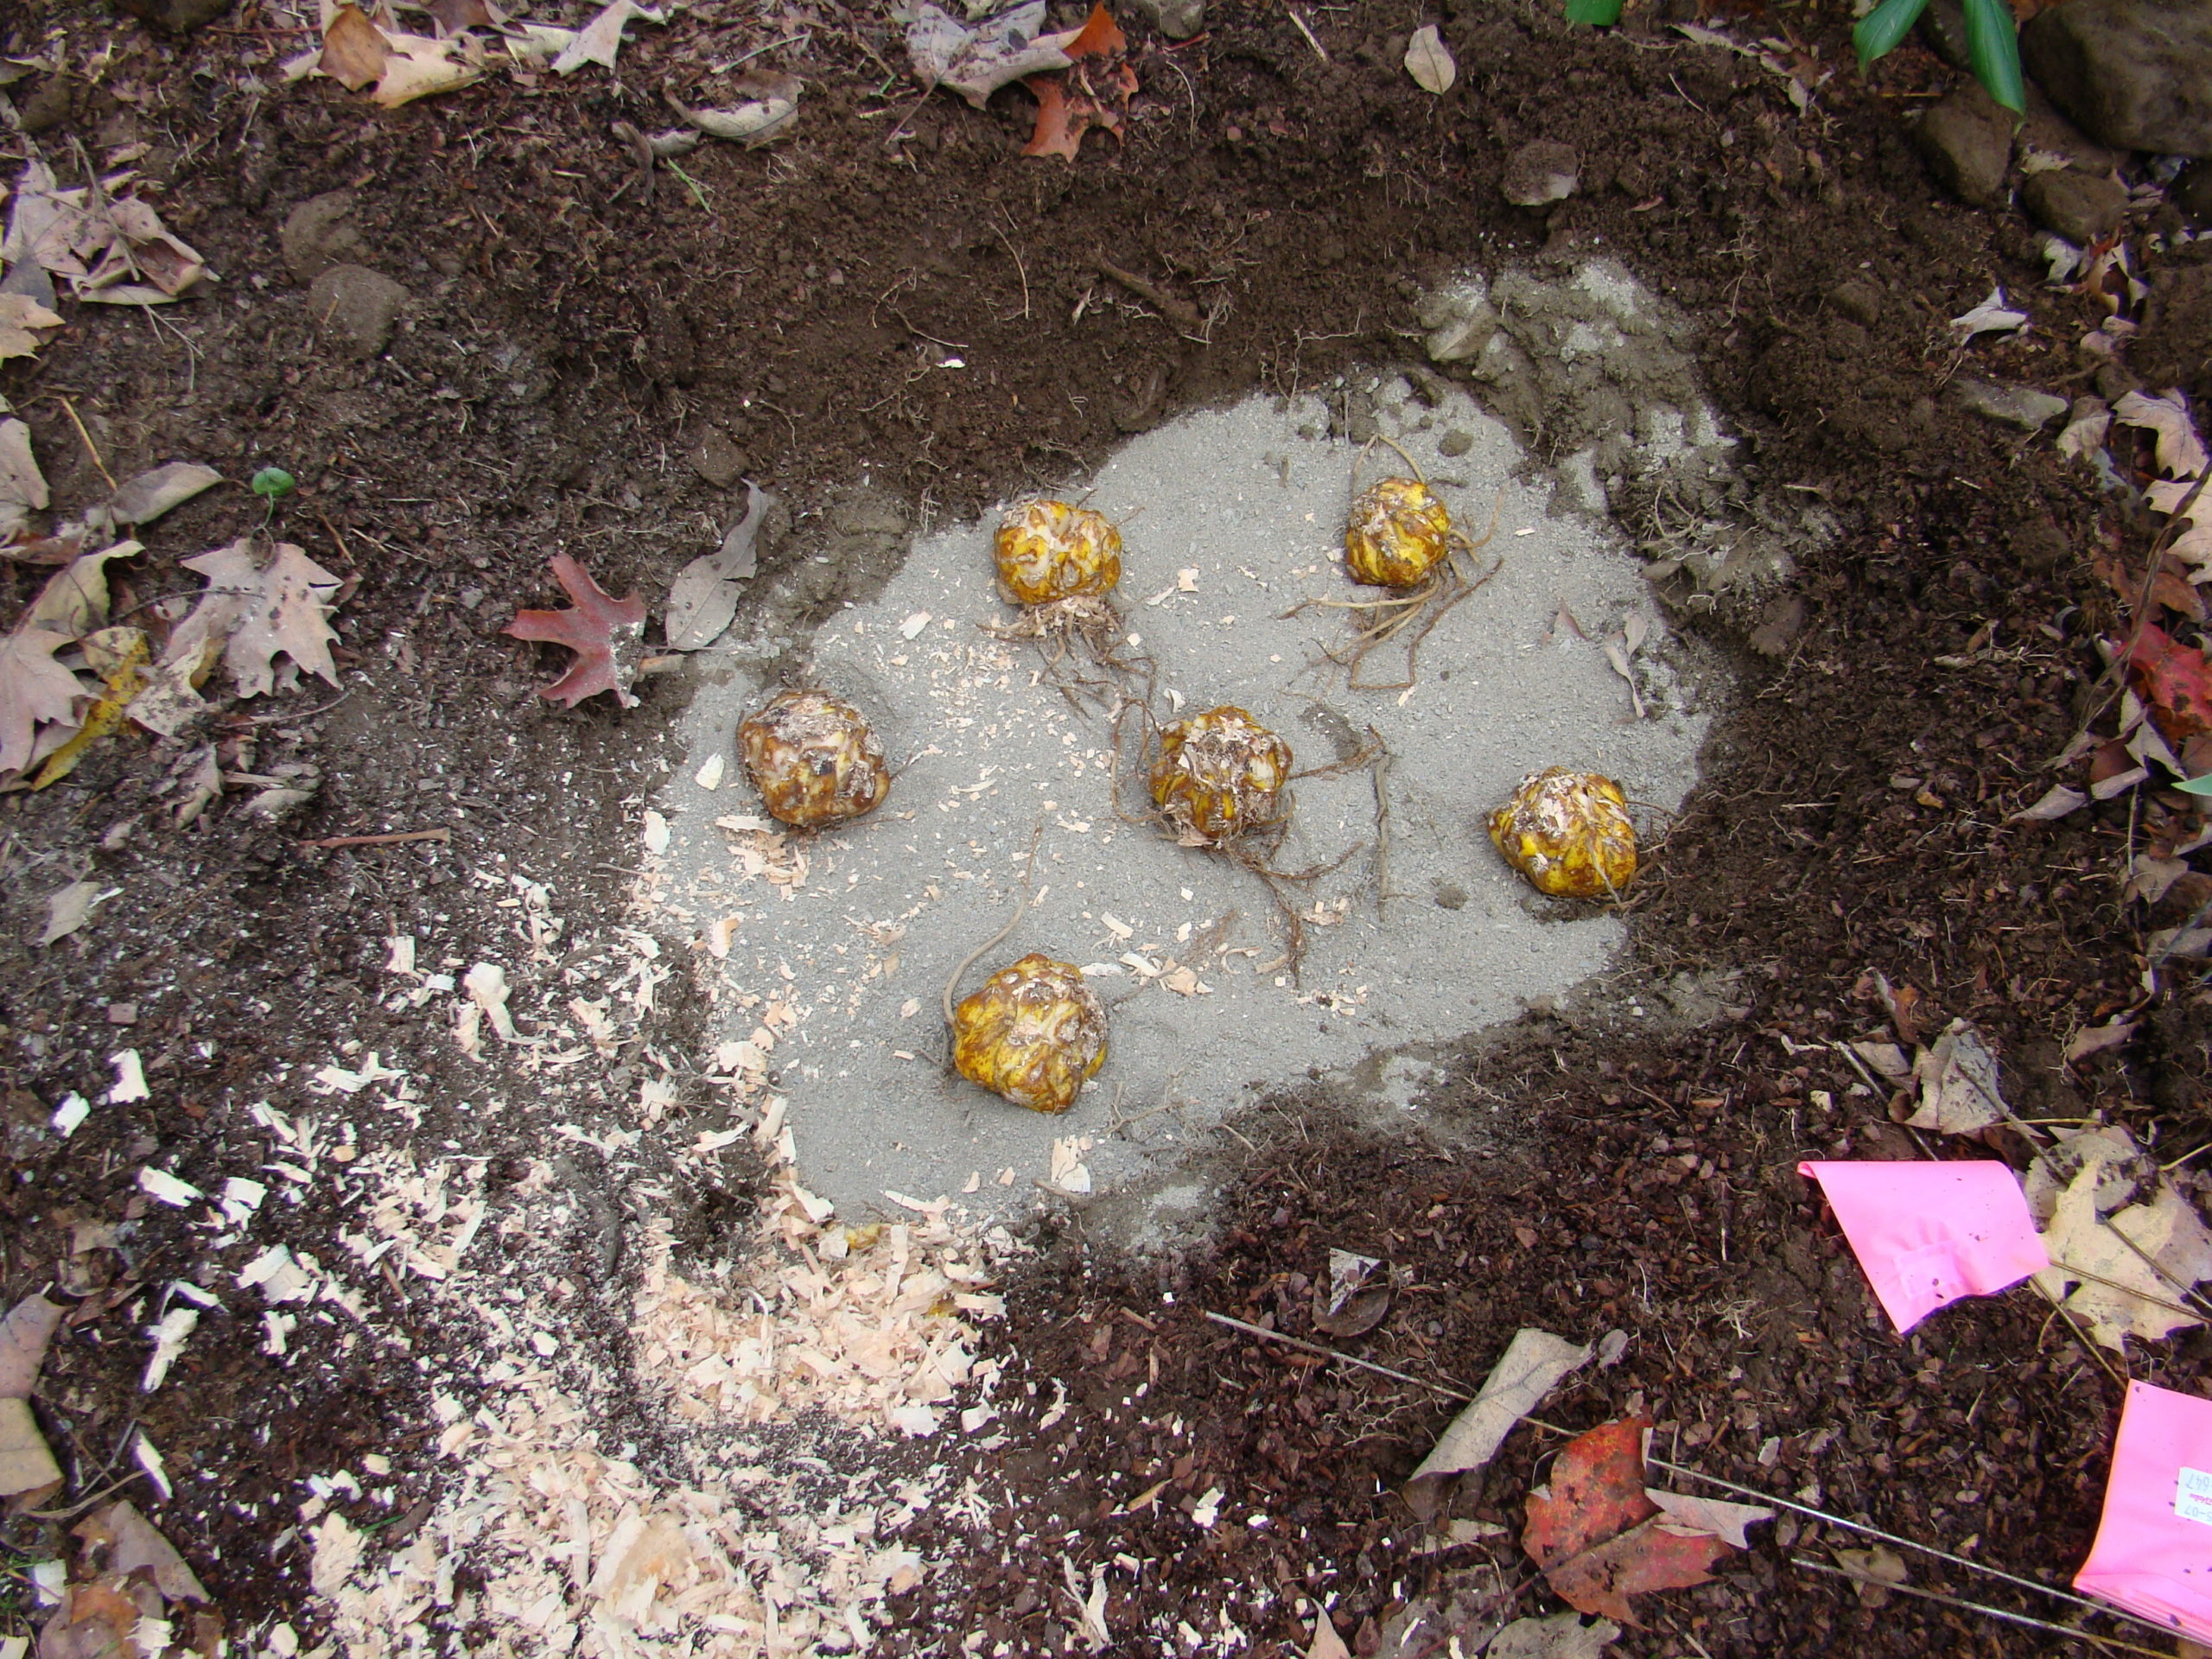 Lily bulbs are planted fairly deep and often in groups. Sand was added at the bottom to aid in draining in a somewhat clayey soil.